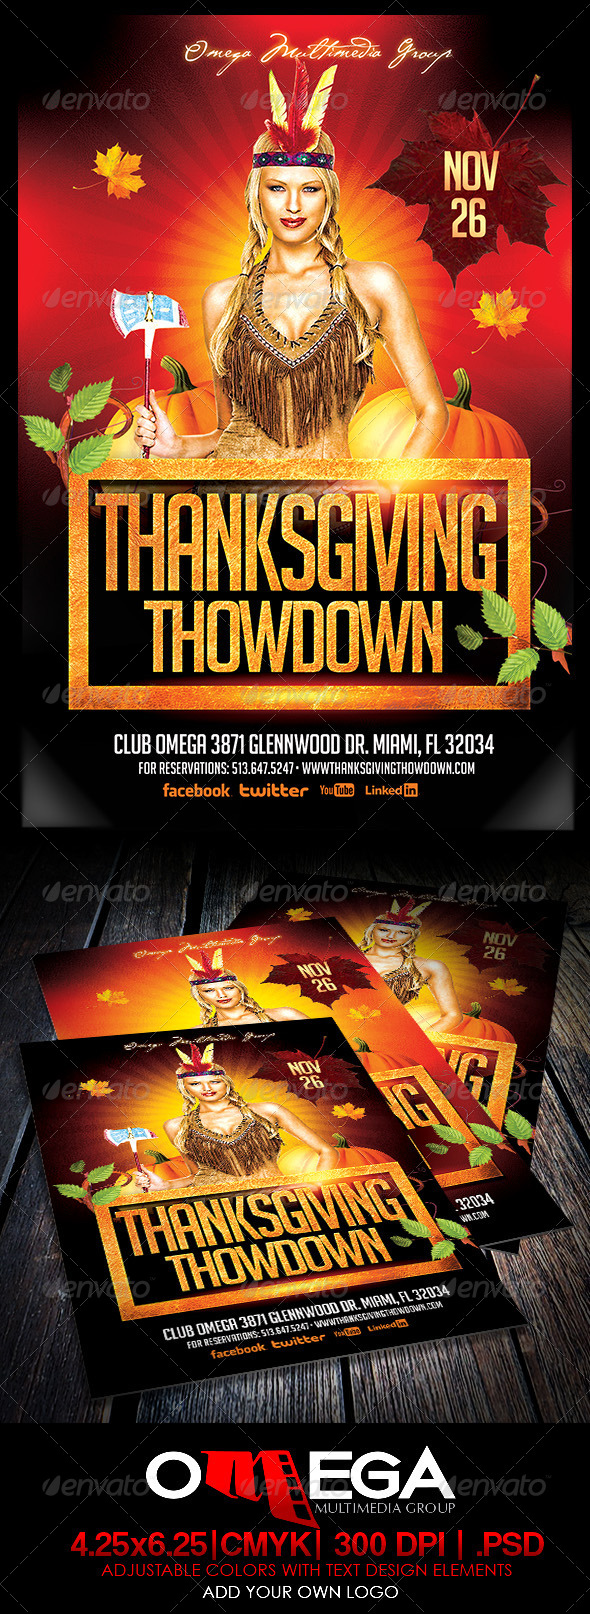 Thanksgiving Thodown